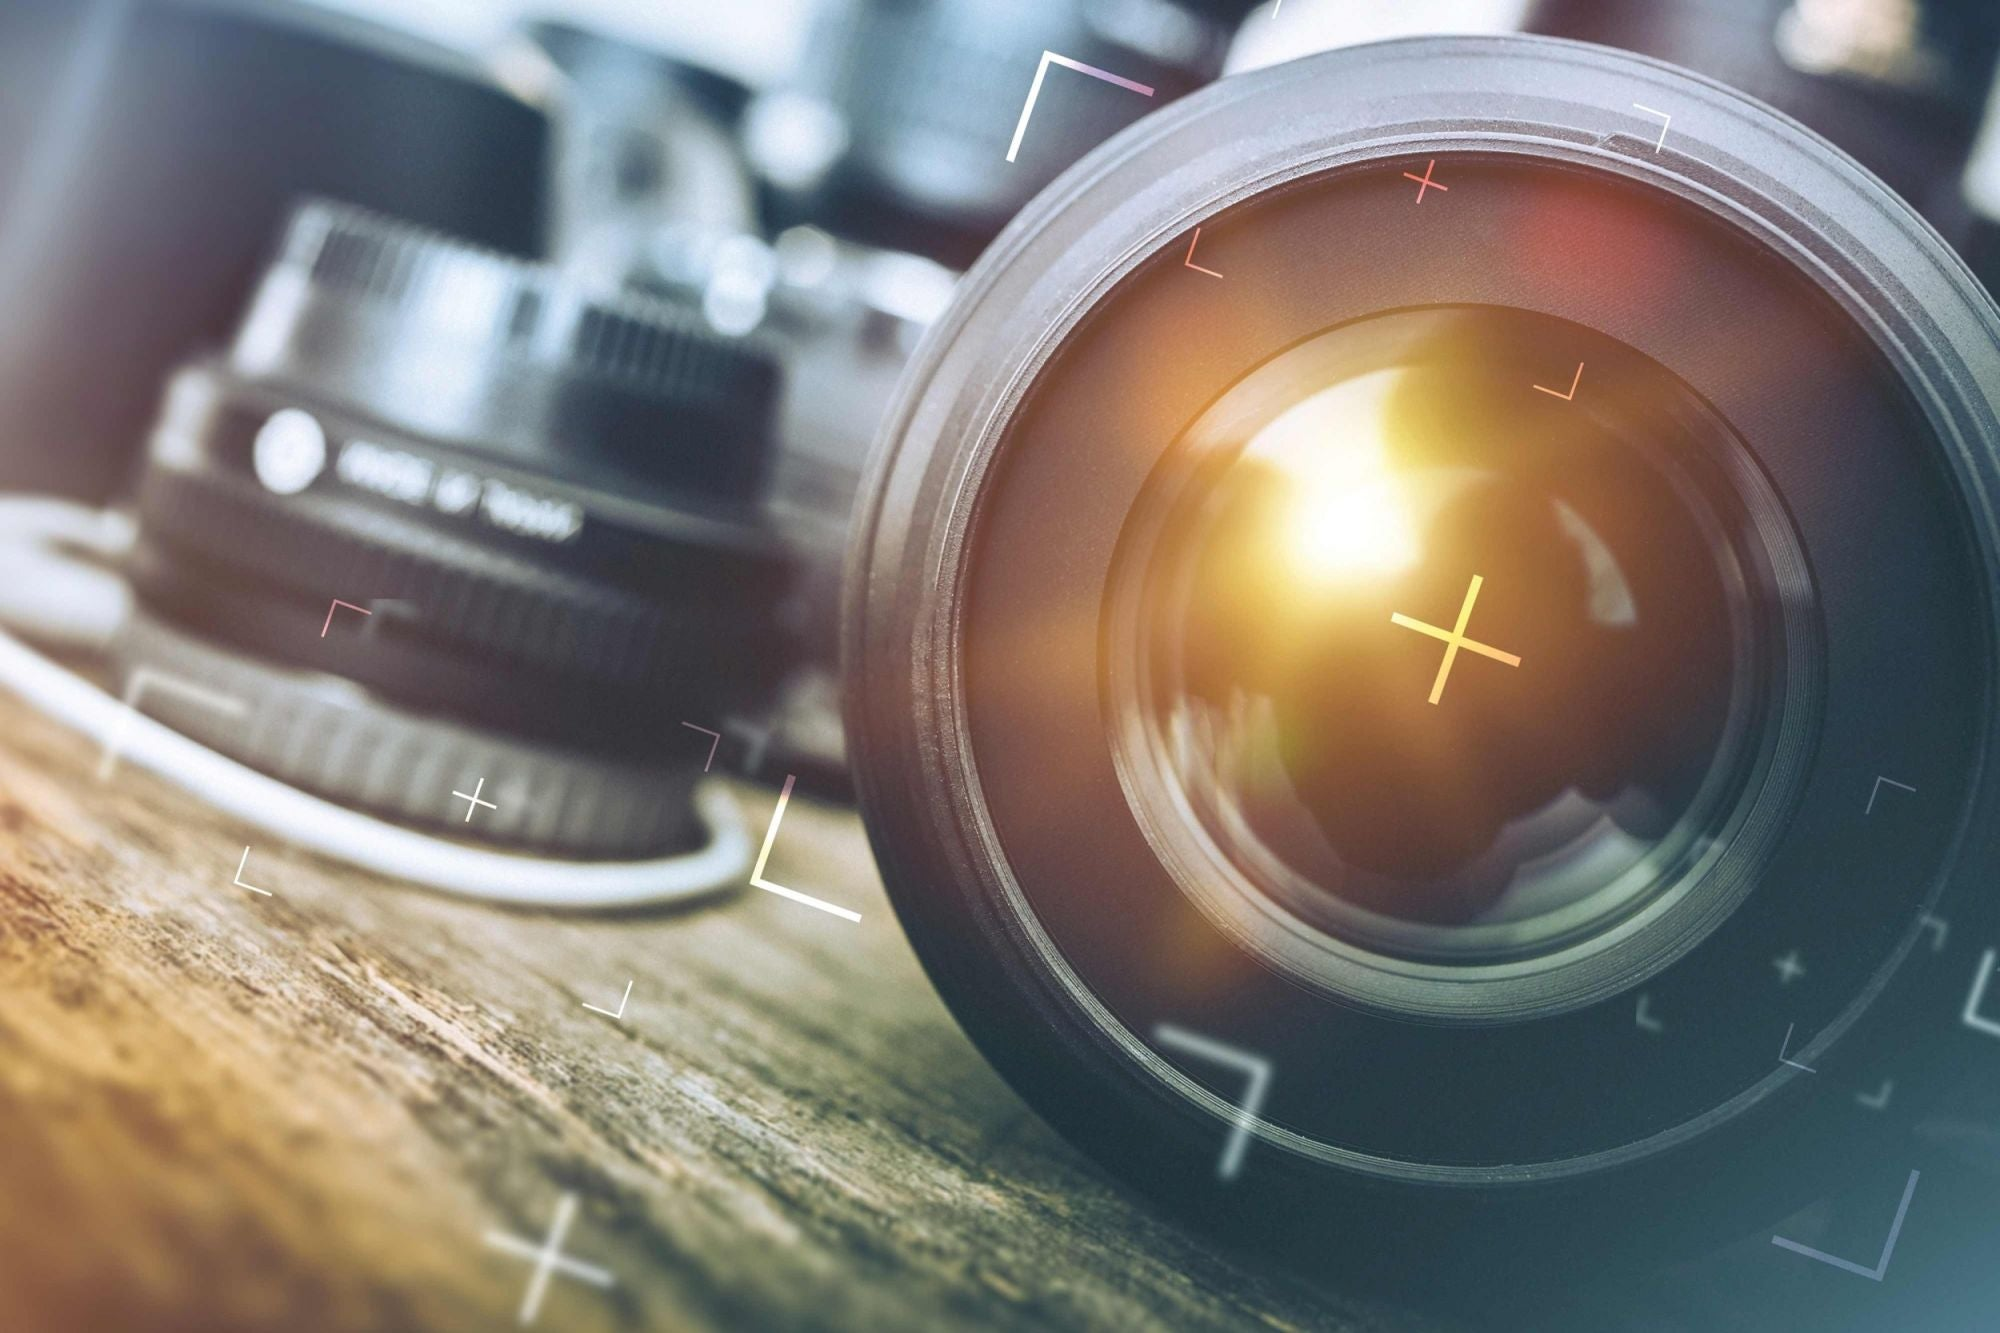 20190620121815 Examples of Photography Business Ideas Bigstock 4000pxW X 2670pxH copy